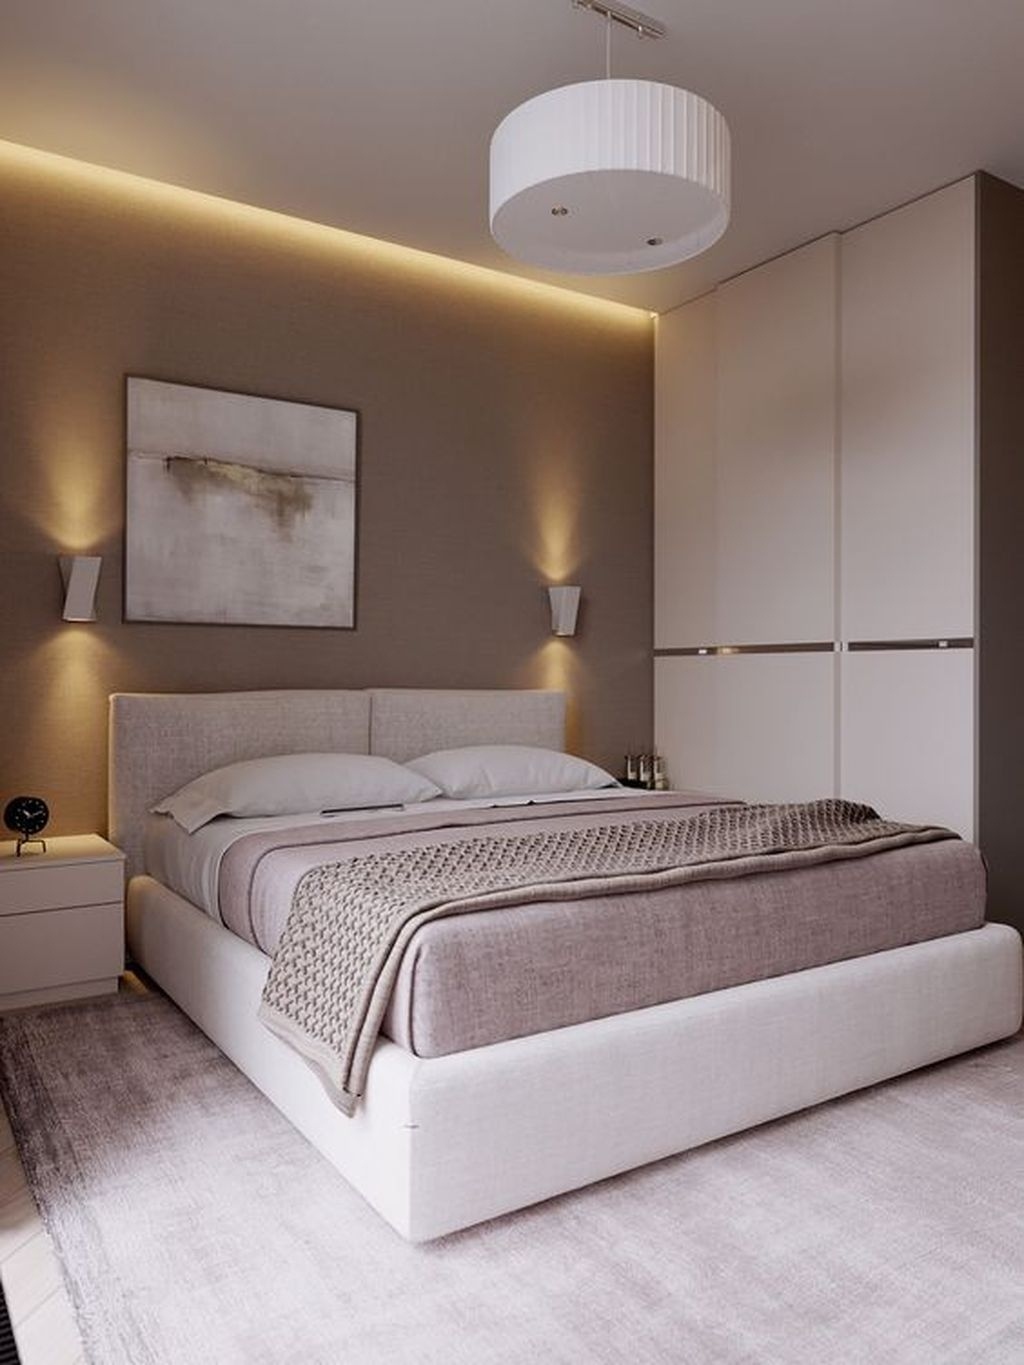 Cute Chandeliers Decoration Ideas For Your Bedroom27